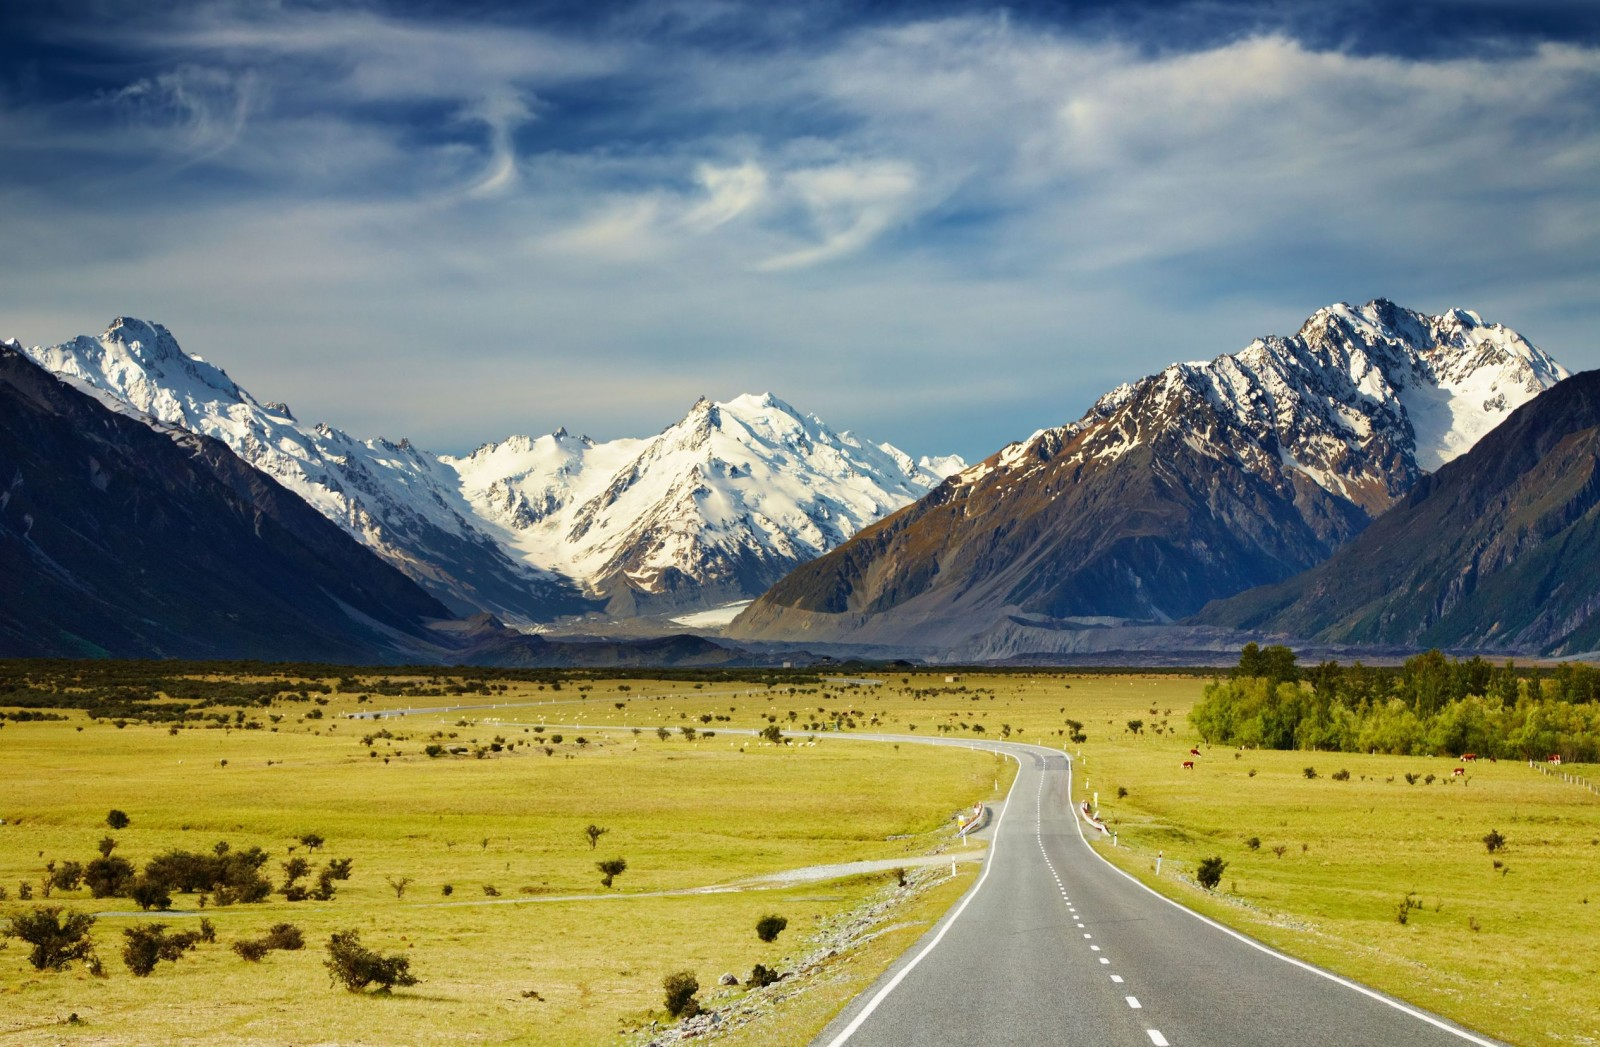 5. Fiordland,New Zealand - Go on a road trip through New Zealand's Fiordland National Park to treat yourself to one of the most spectacular vistas on the planet (see left).The snow-capped mountain range rivals the Tetons (the teenagers of the American Rockies), and the dramatic, jagged peaks are reminiscent of another destination on our list, locale #7 to be exact.